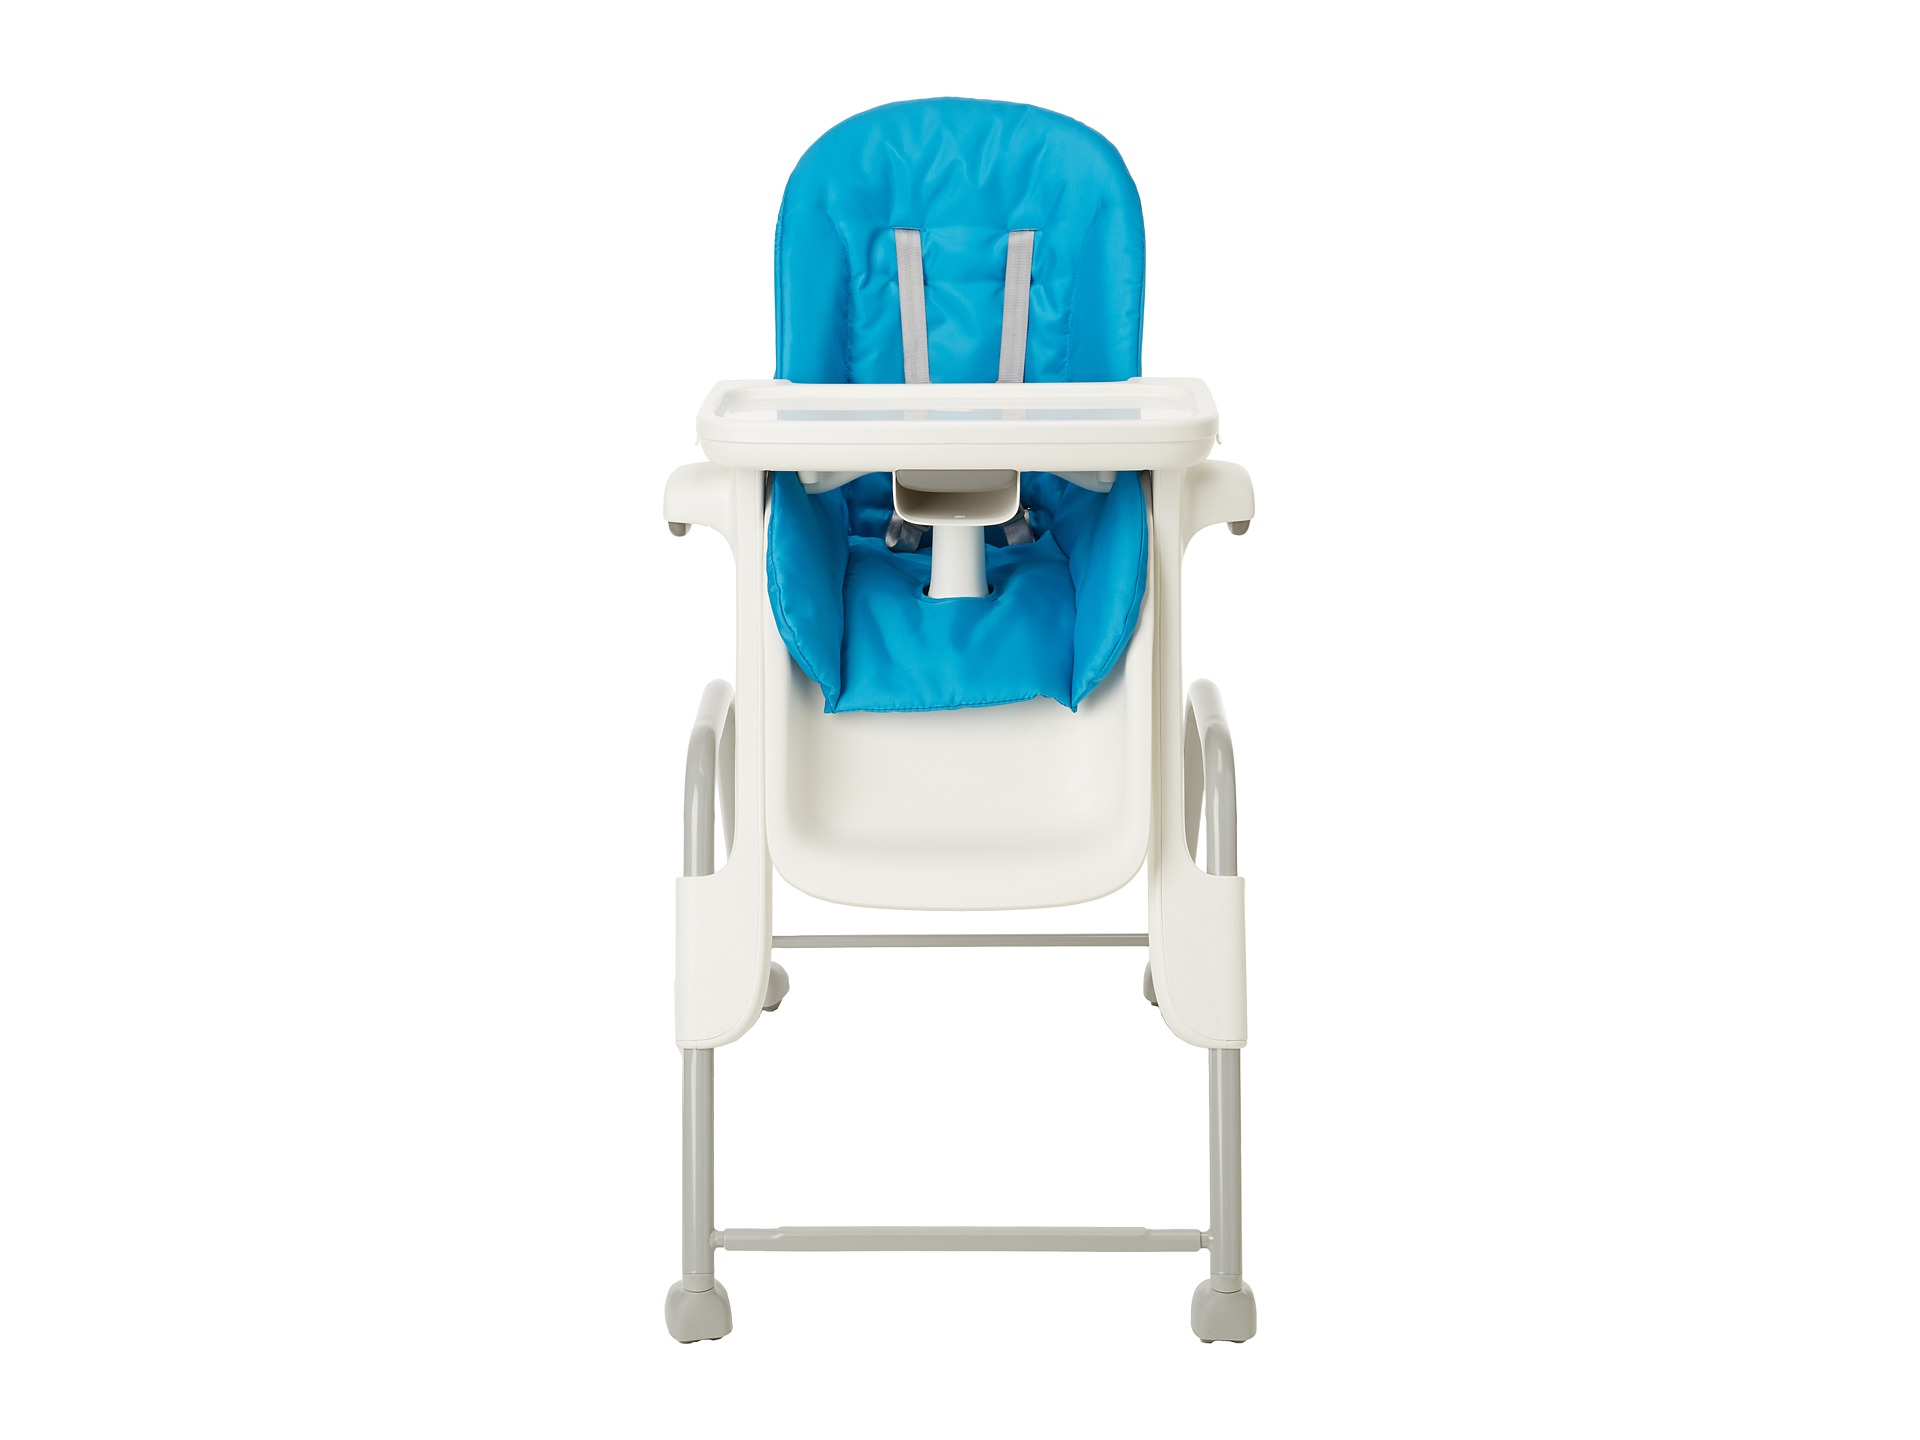 oxo high chair the shane dawson tot seedling zappos free shipping